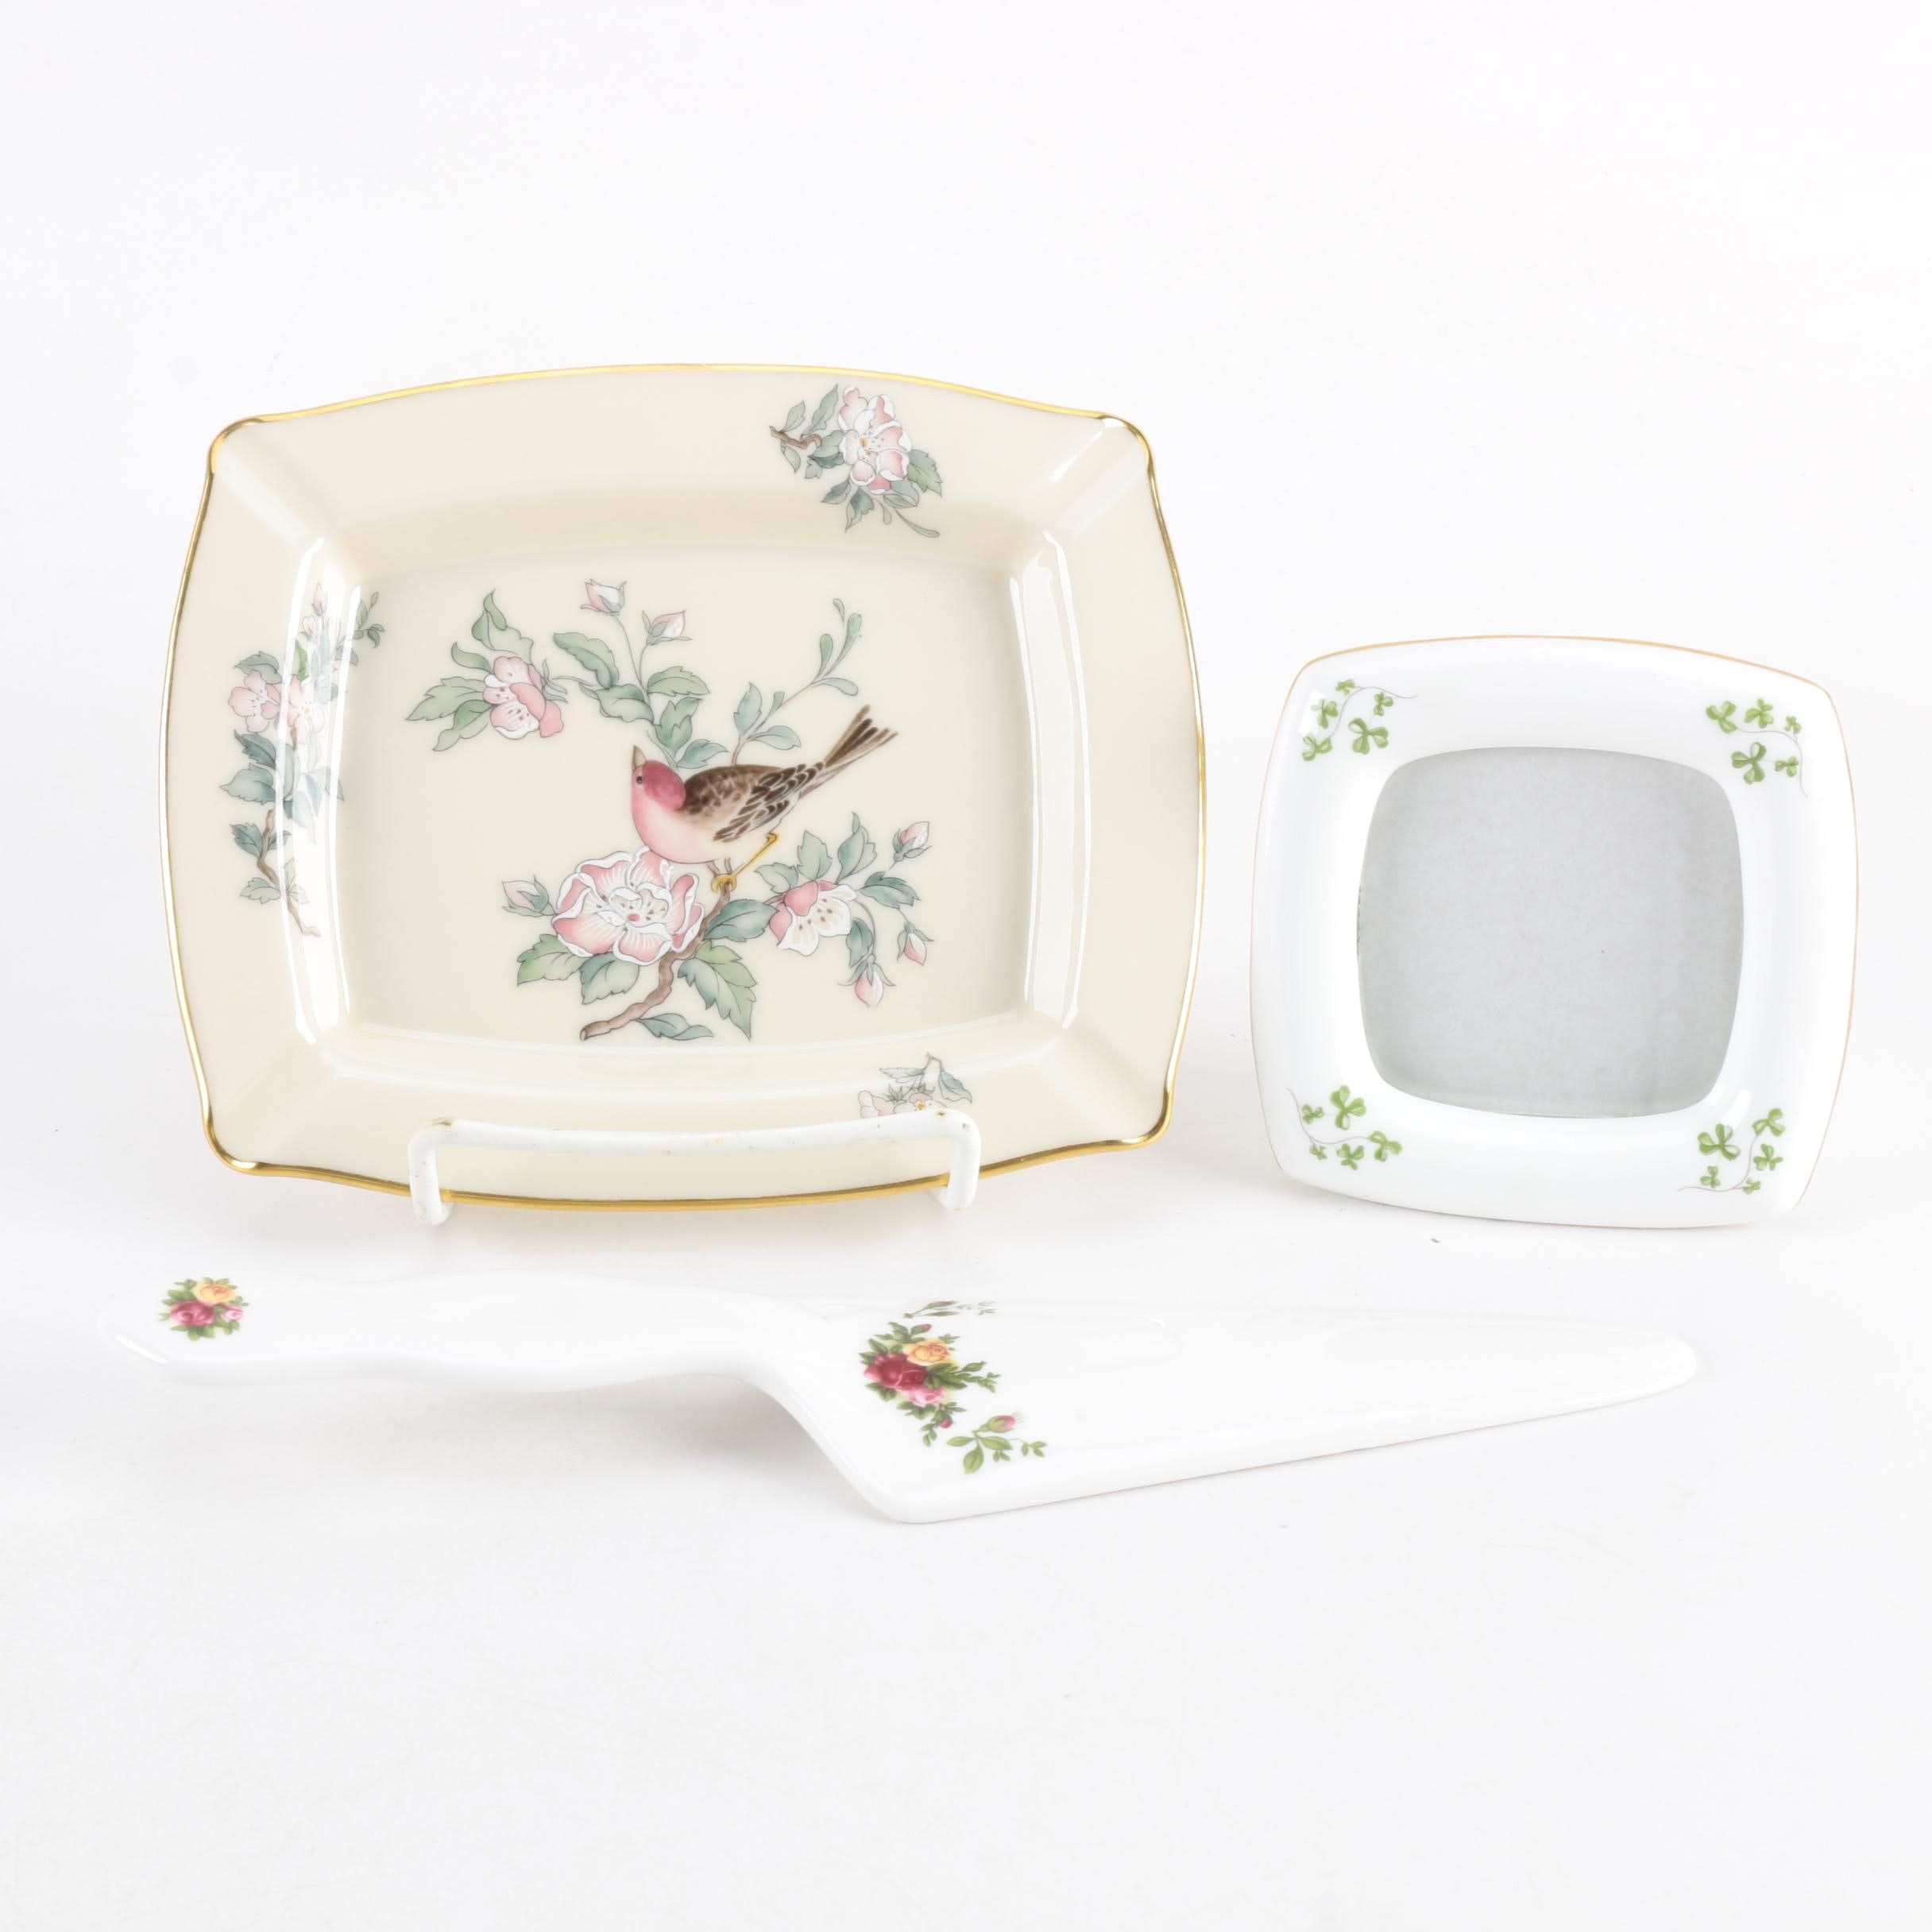 Porcelain Serveware and Decor Featuring Lenox